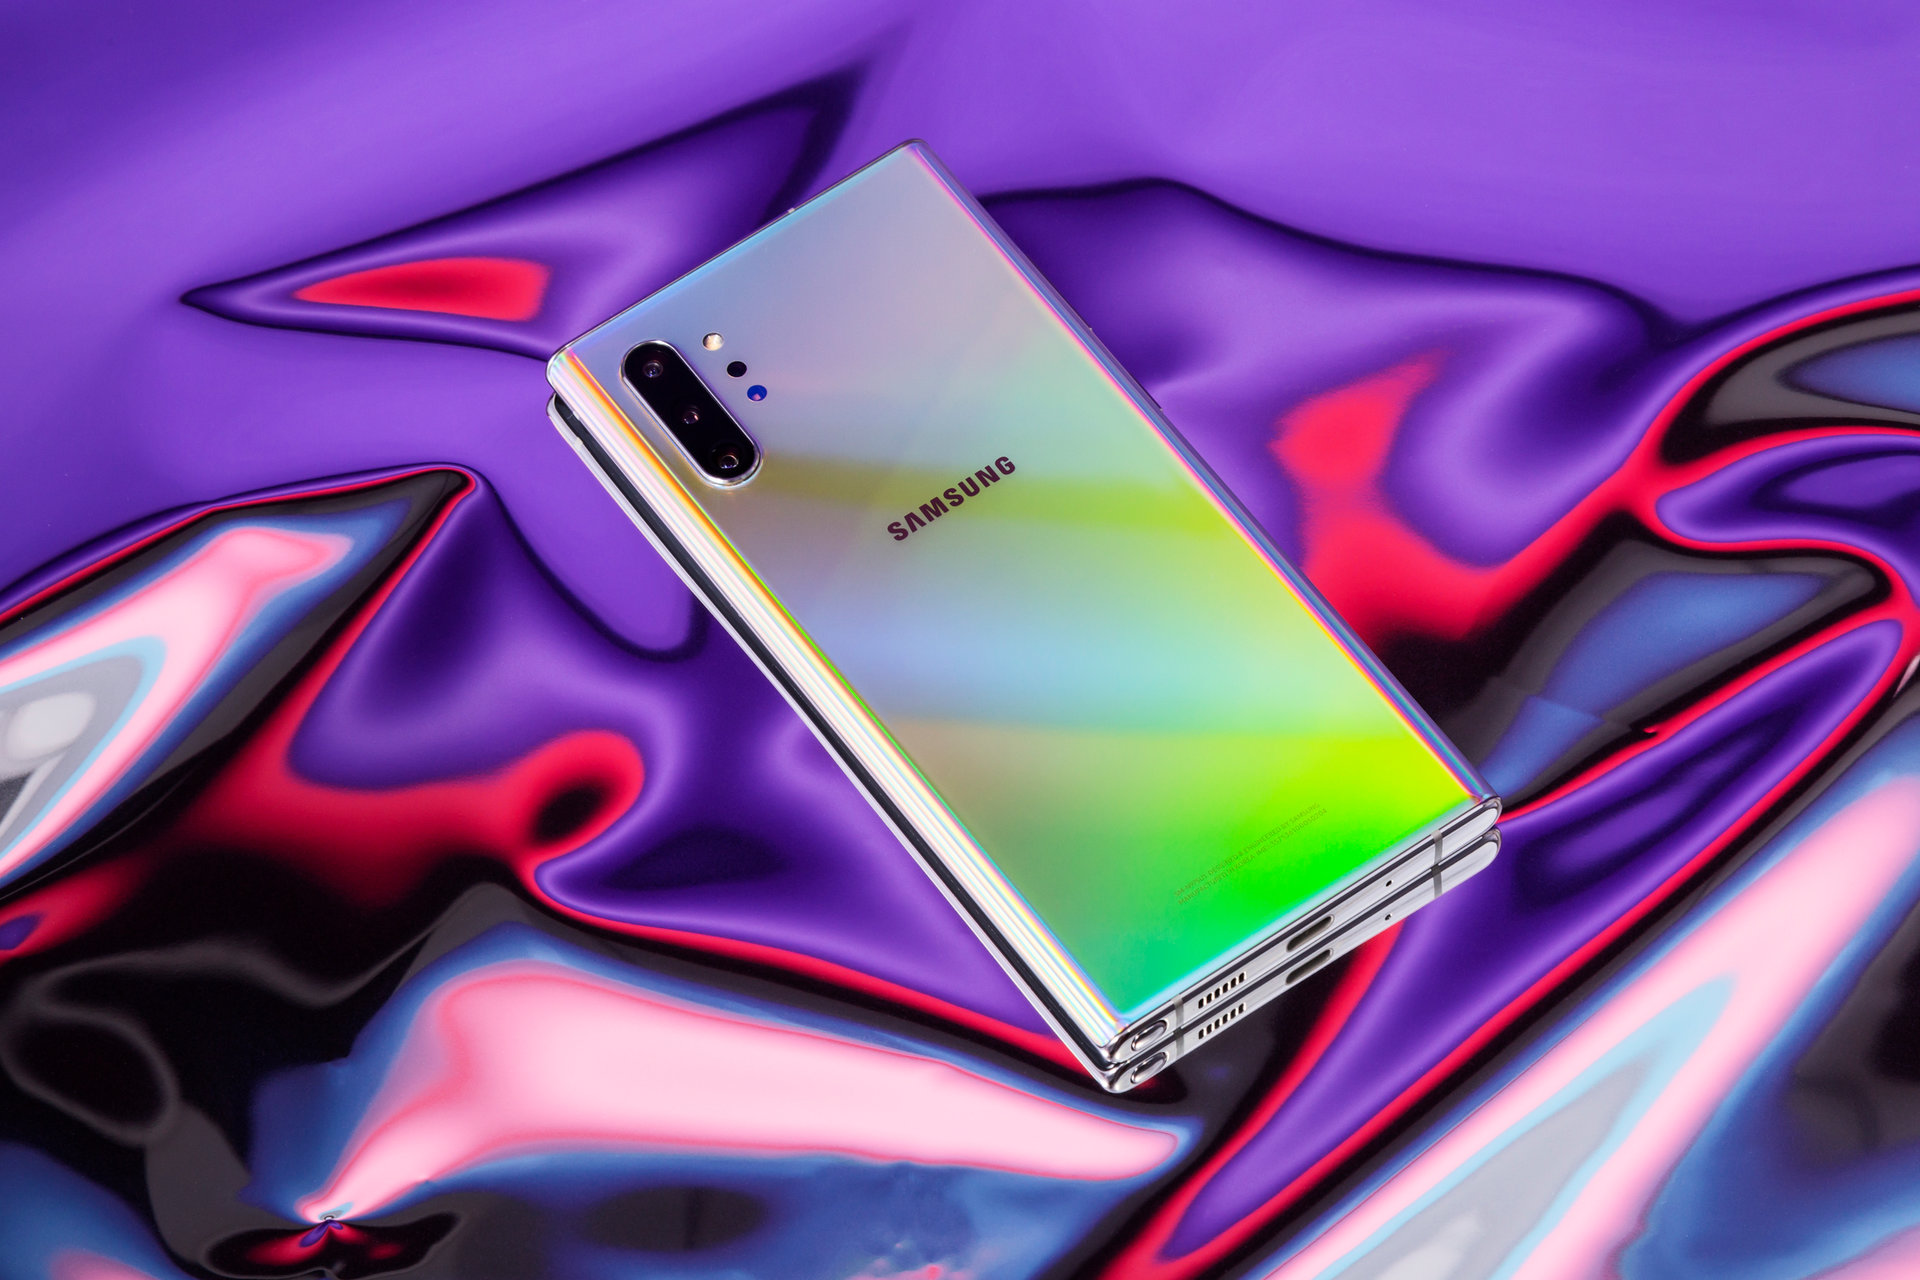 9 reasons you should buy the Samsung Galaxy S10 instead of the new Galaxy Note 10